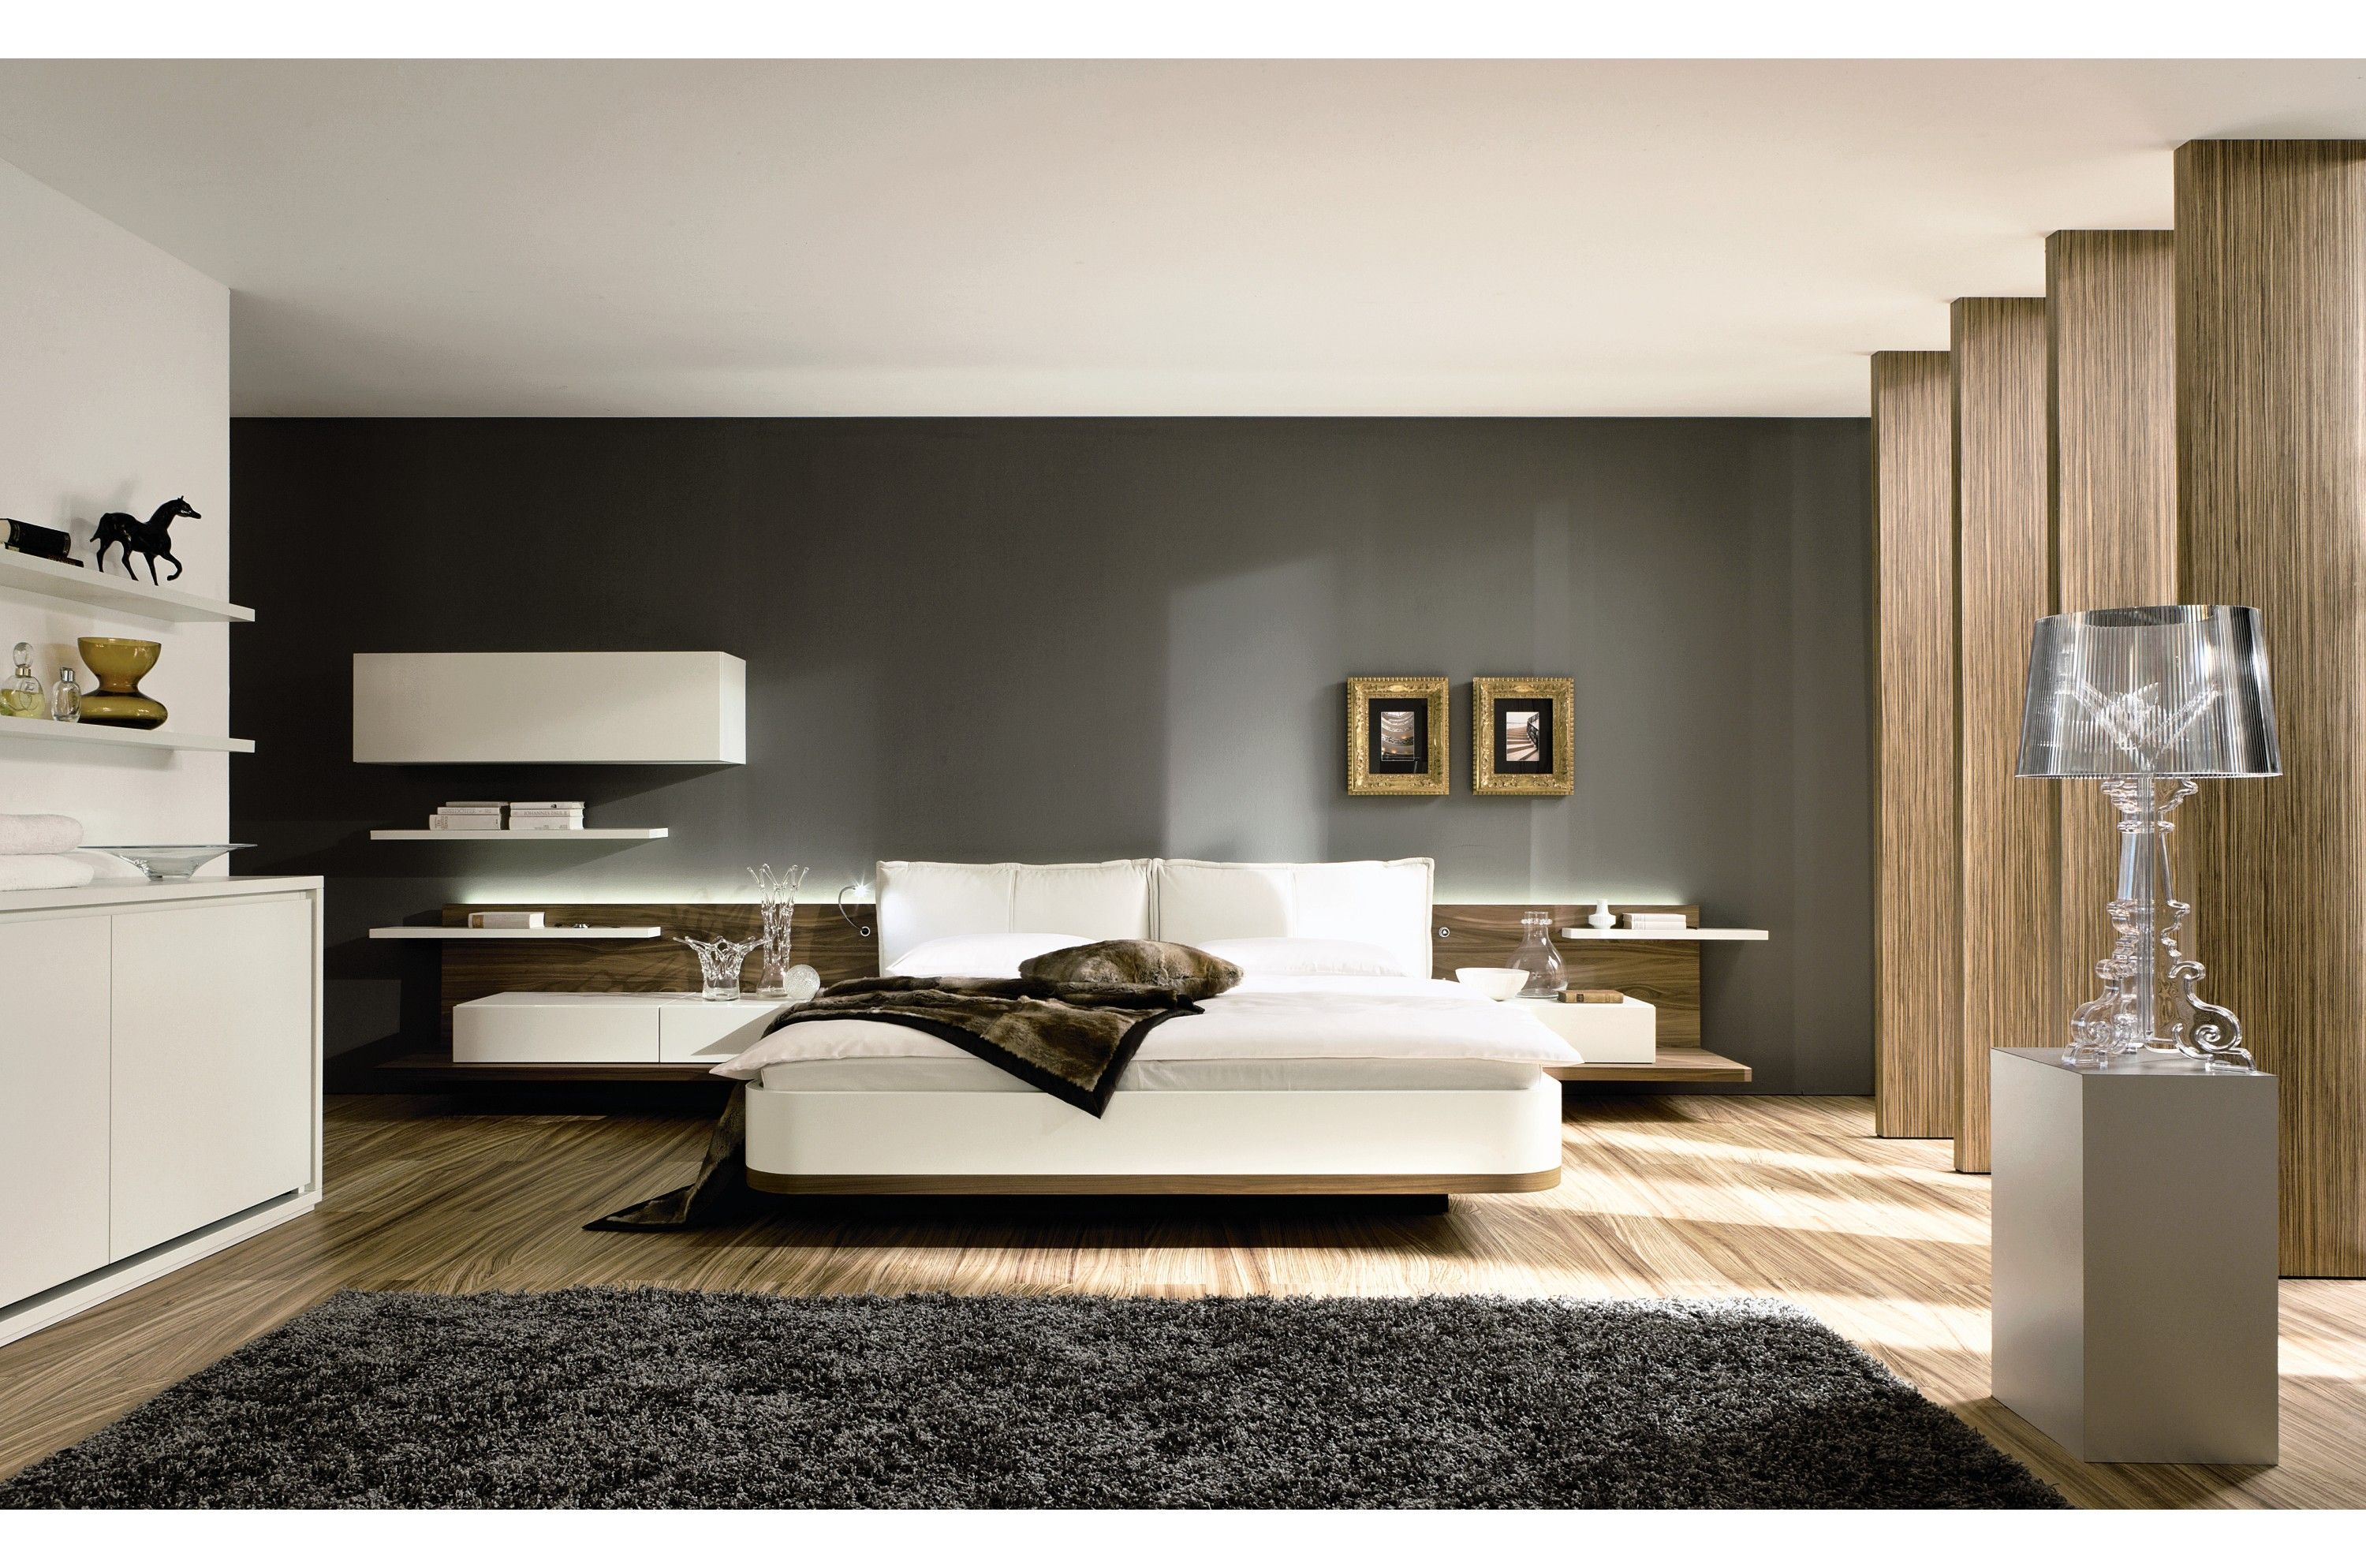 Interior Design Modern Modern Bedroom Innovation Bedroom Ideas Interior Design And Many